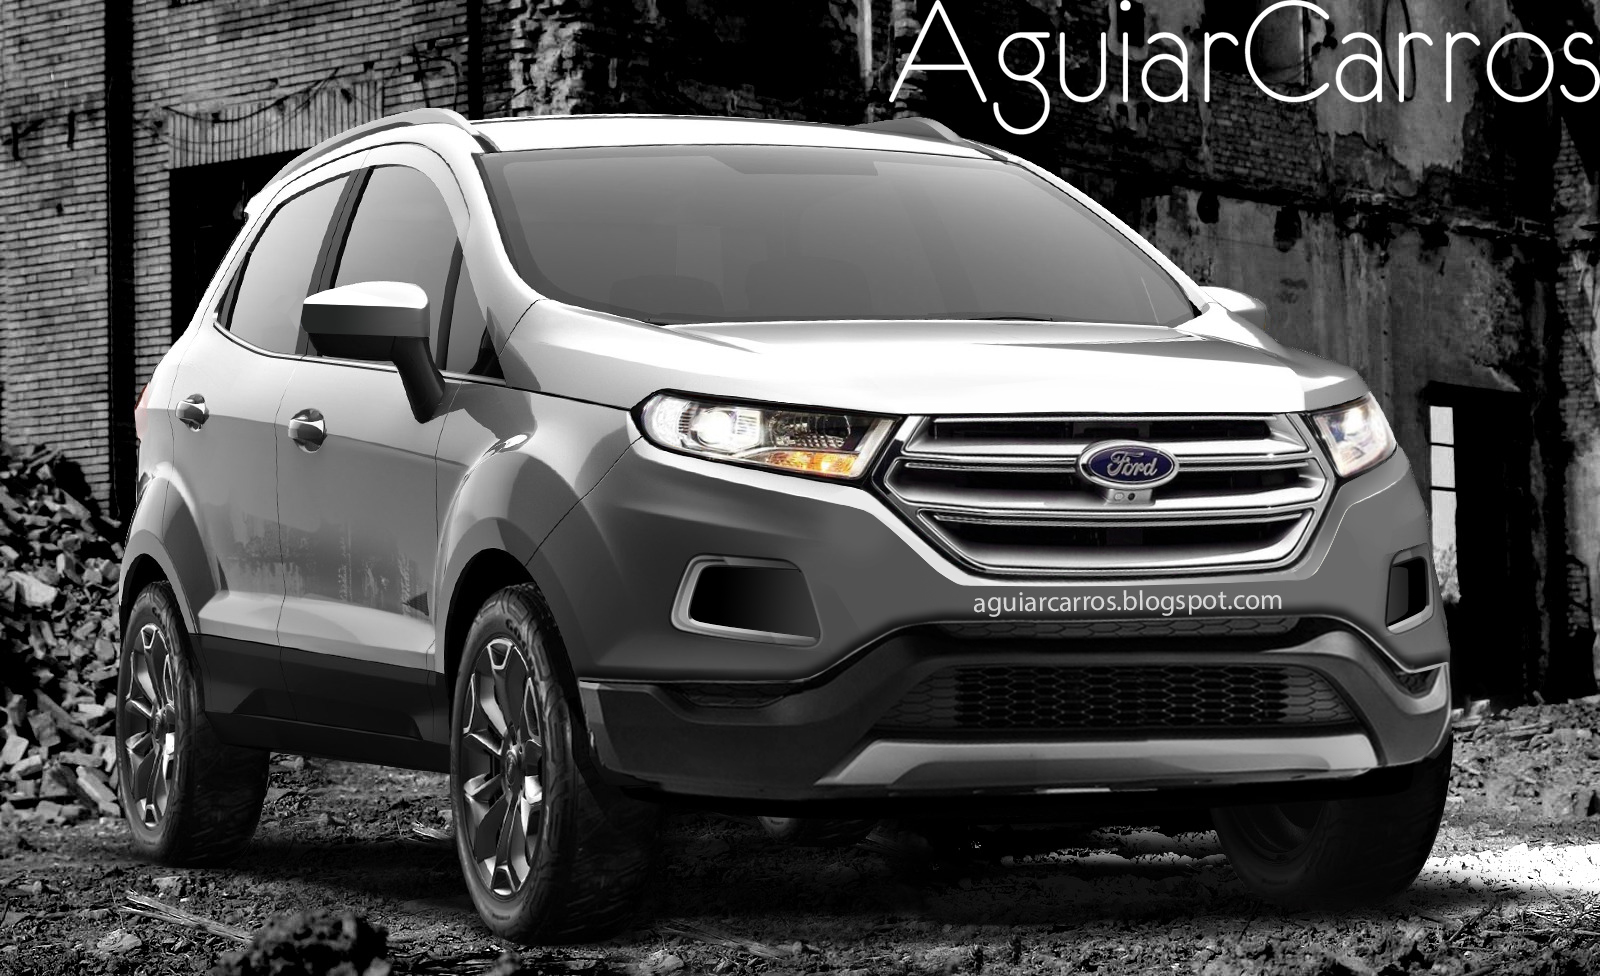 2017 ford ecosport car photos catalog 2018. Black Bedroom Furniture Sets. Home Design Ideas